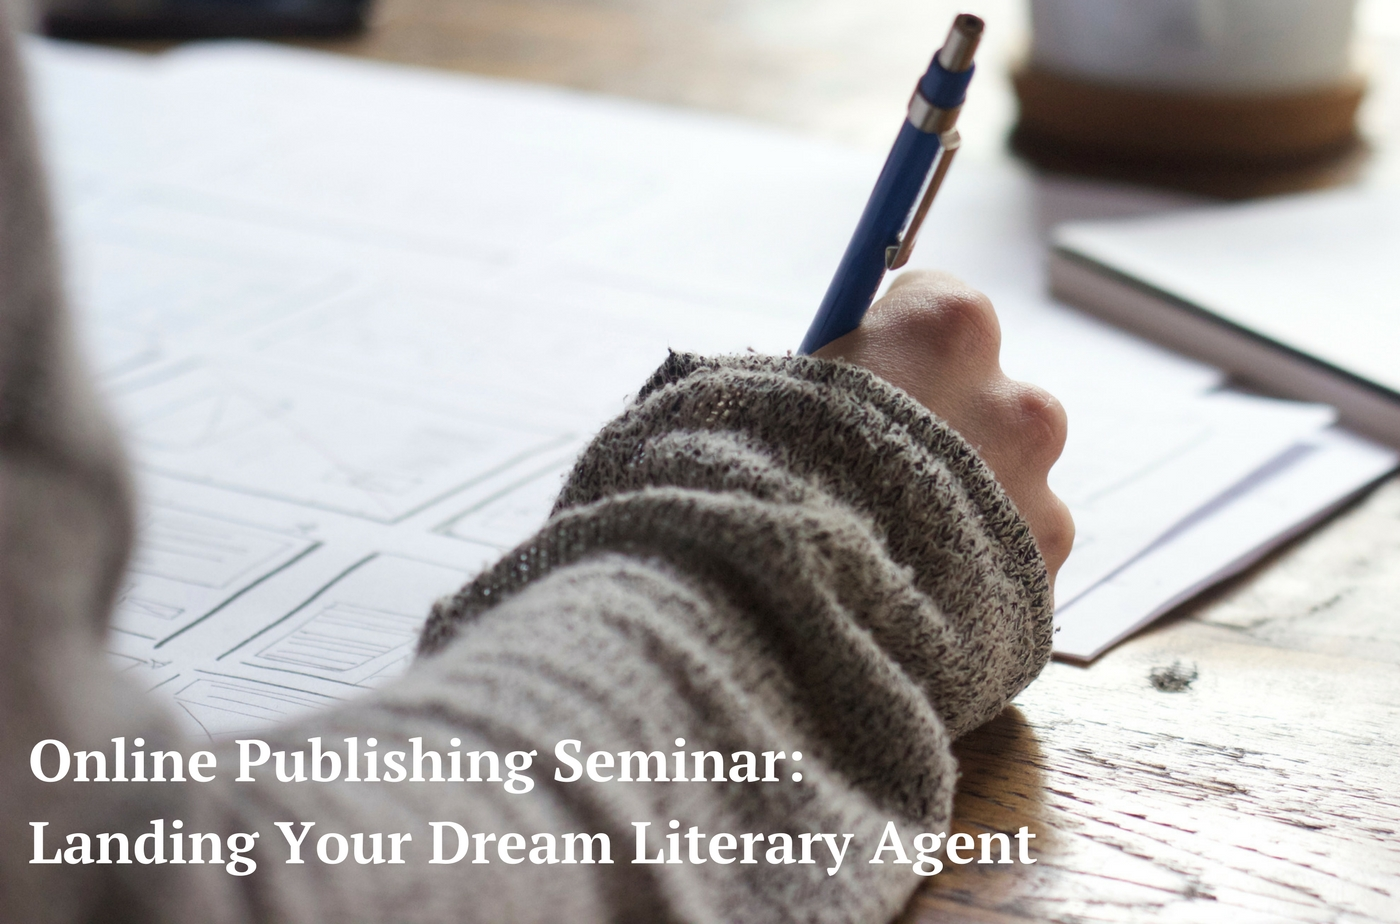 Catapult online classes: Sarah Bowlin, Catapult Editors, Publishing Seminar: Writing the Query Letter &  Landing Your Dream Literary Agent  , Publishing, Independent Study